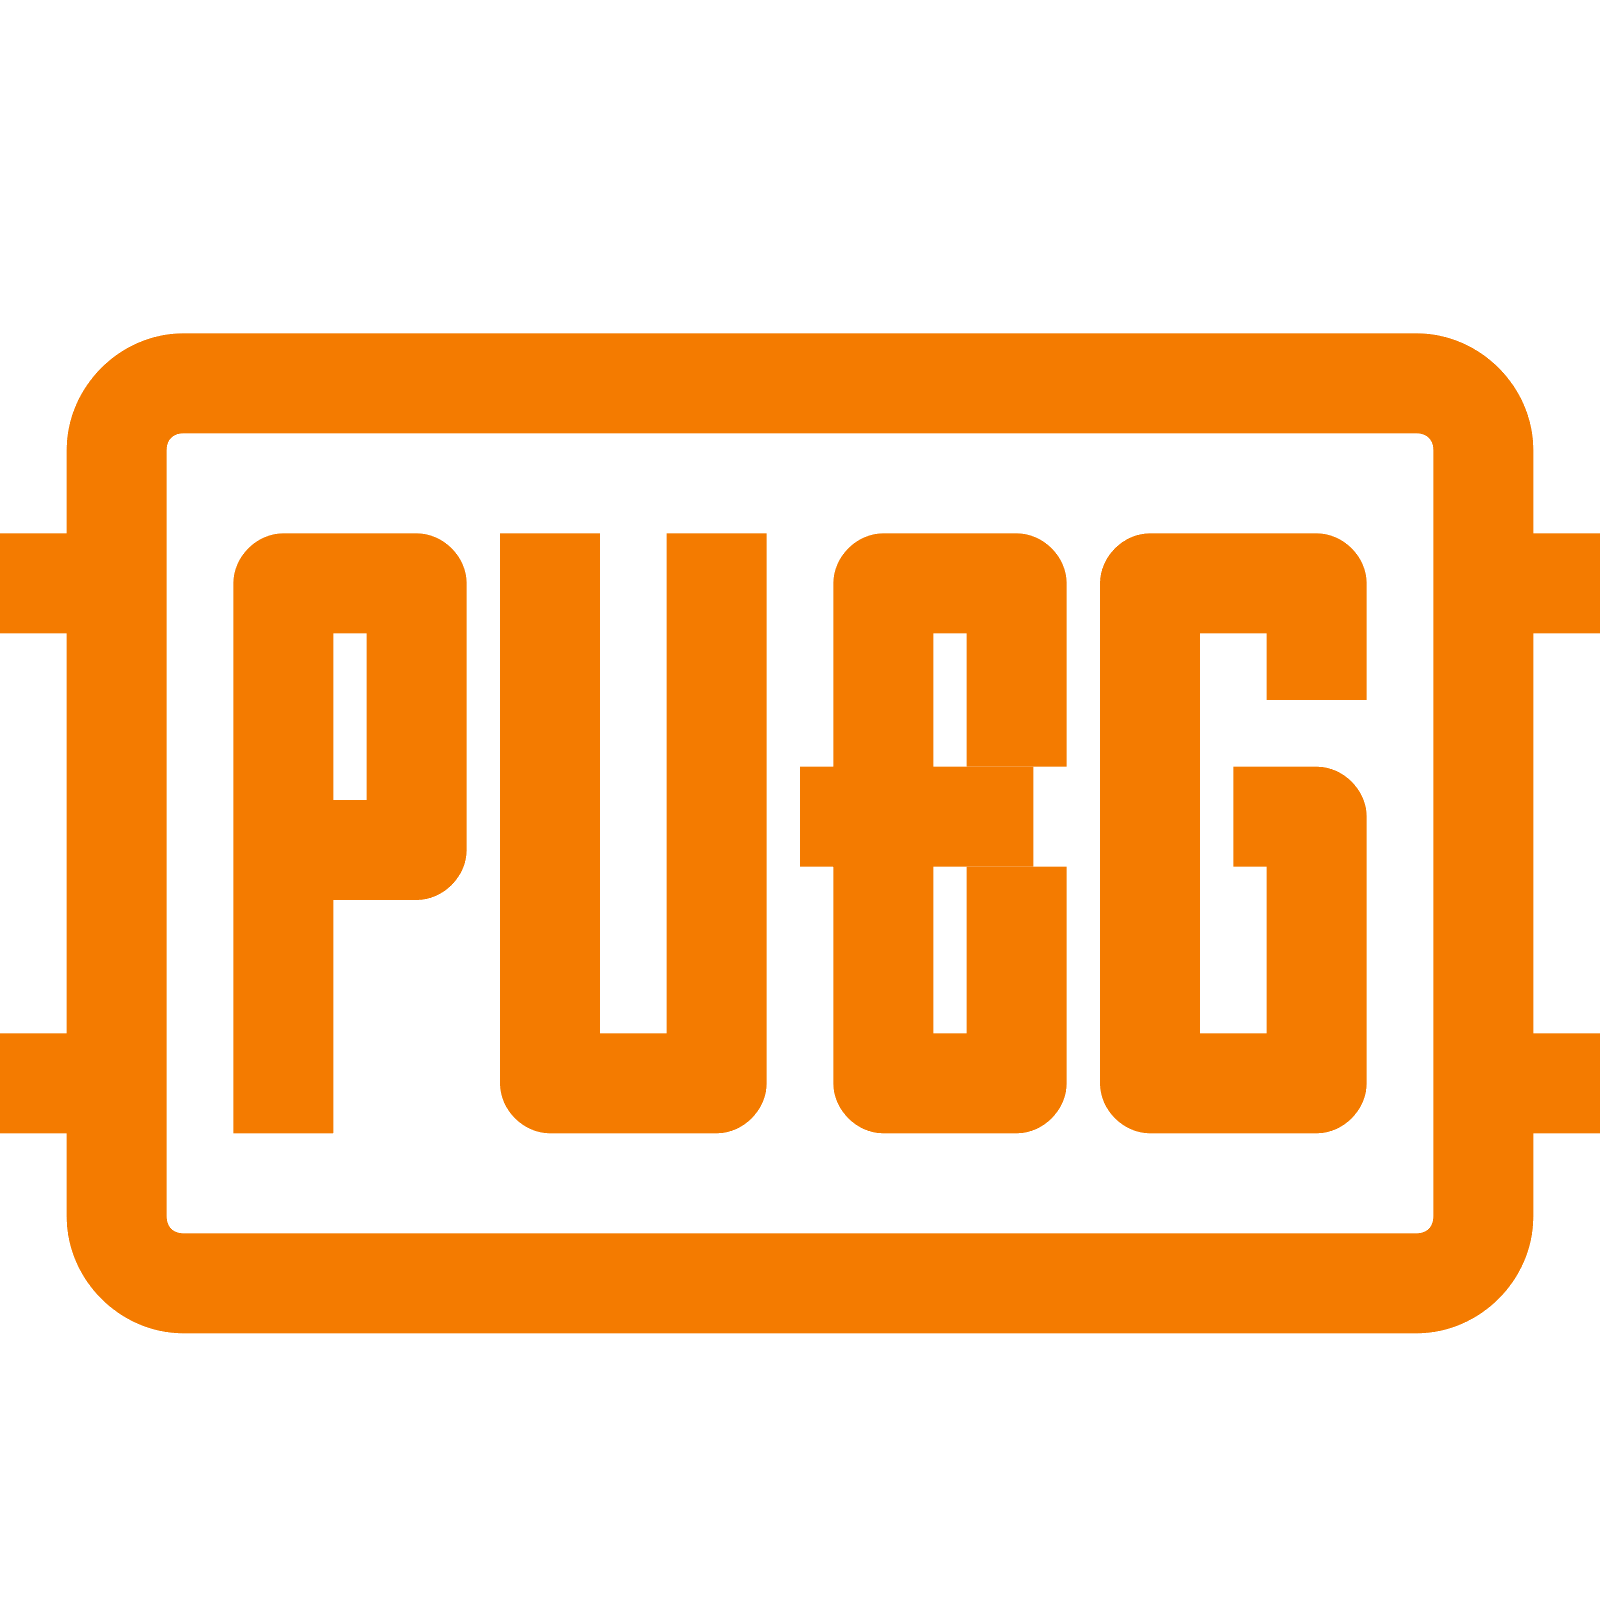 Pubg Orange PNG Logo Photo image #48215